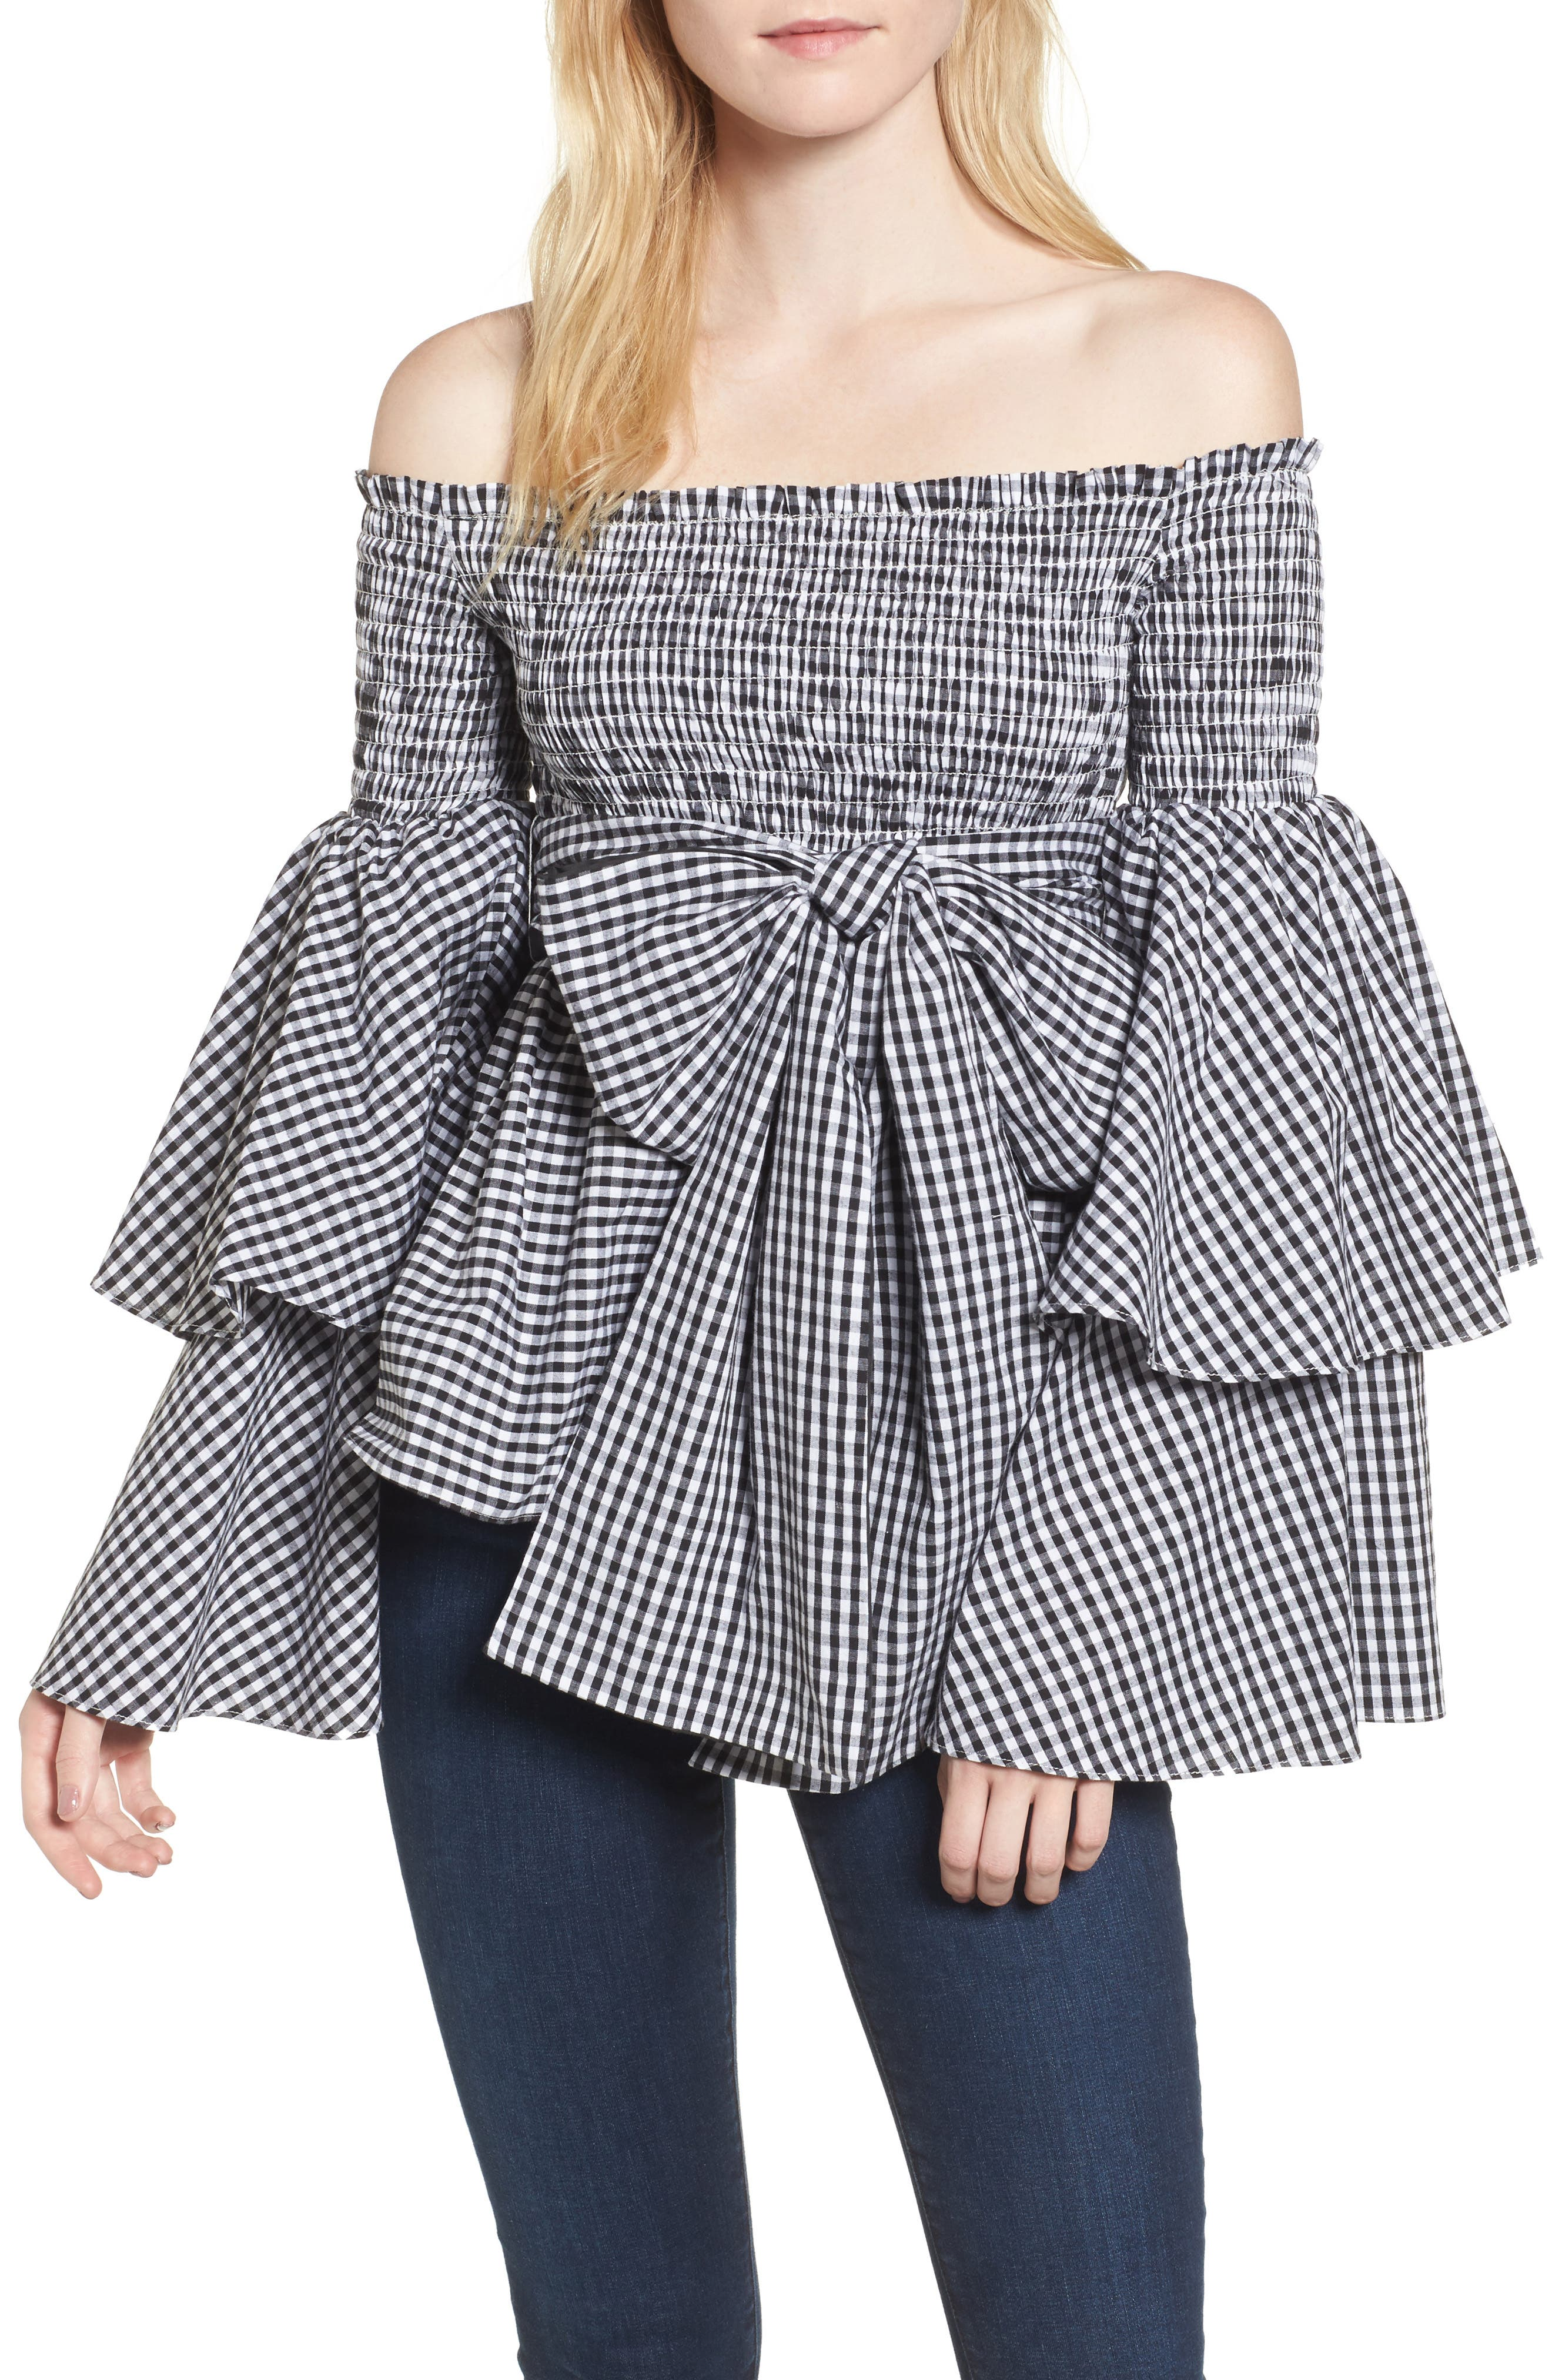 Main Image - StyleKeepers Disco Fever Off the Shoulder Top